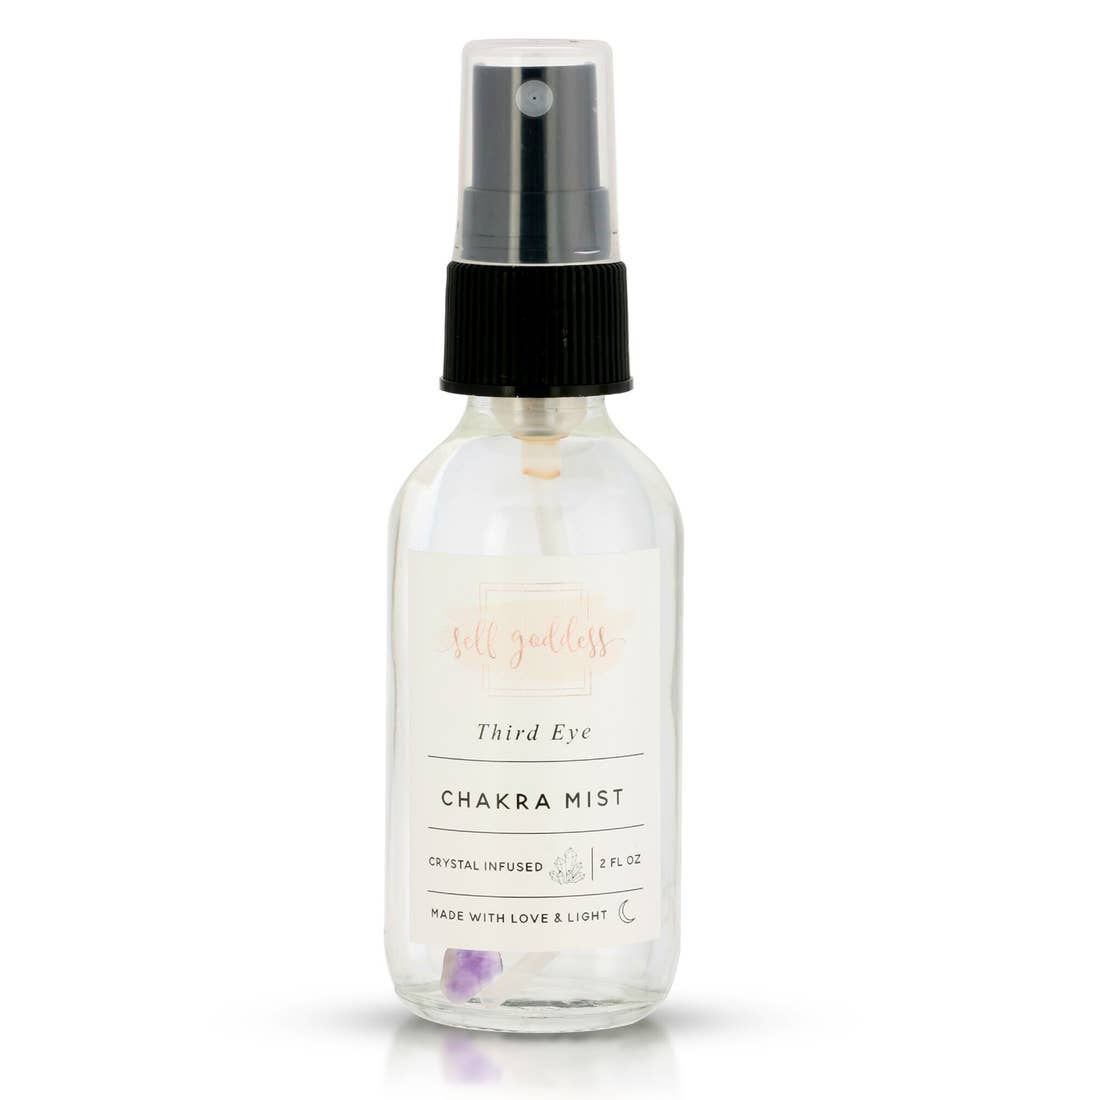 Third Eye Chakra Mist - Femme Wares Niagara Local Small Business